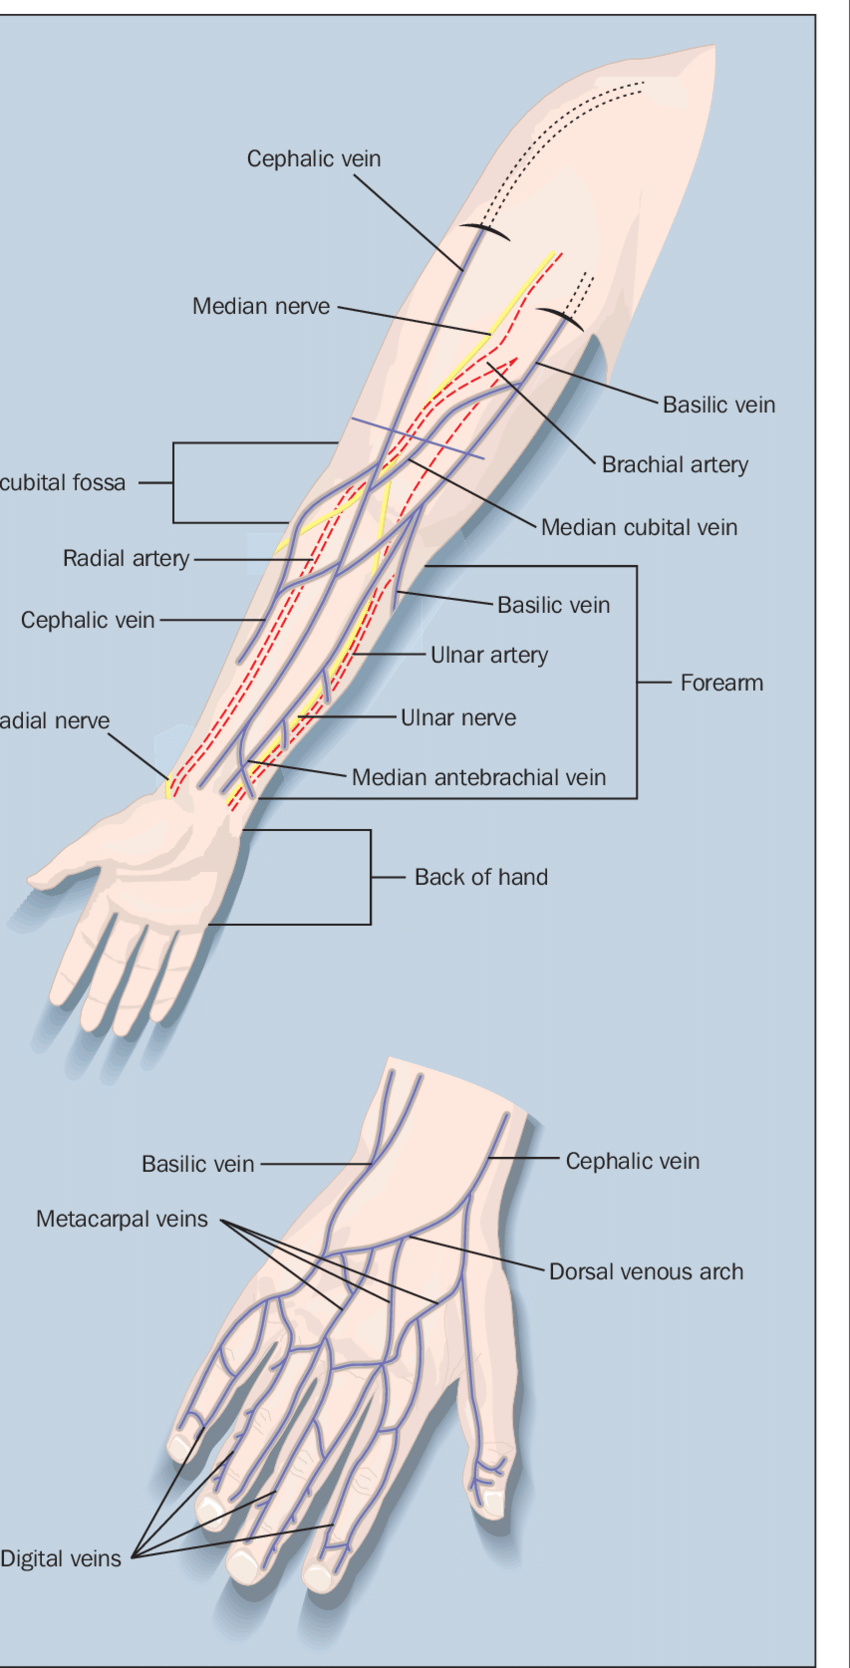 hight resolution of the superficial veins of the forearm and the hand with cannulation sites